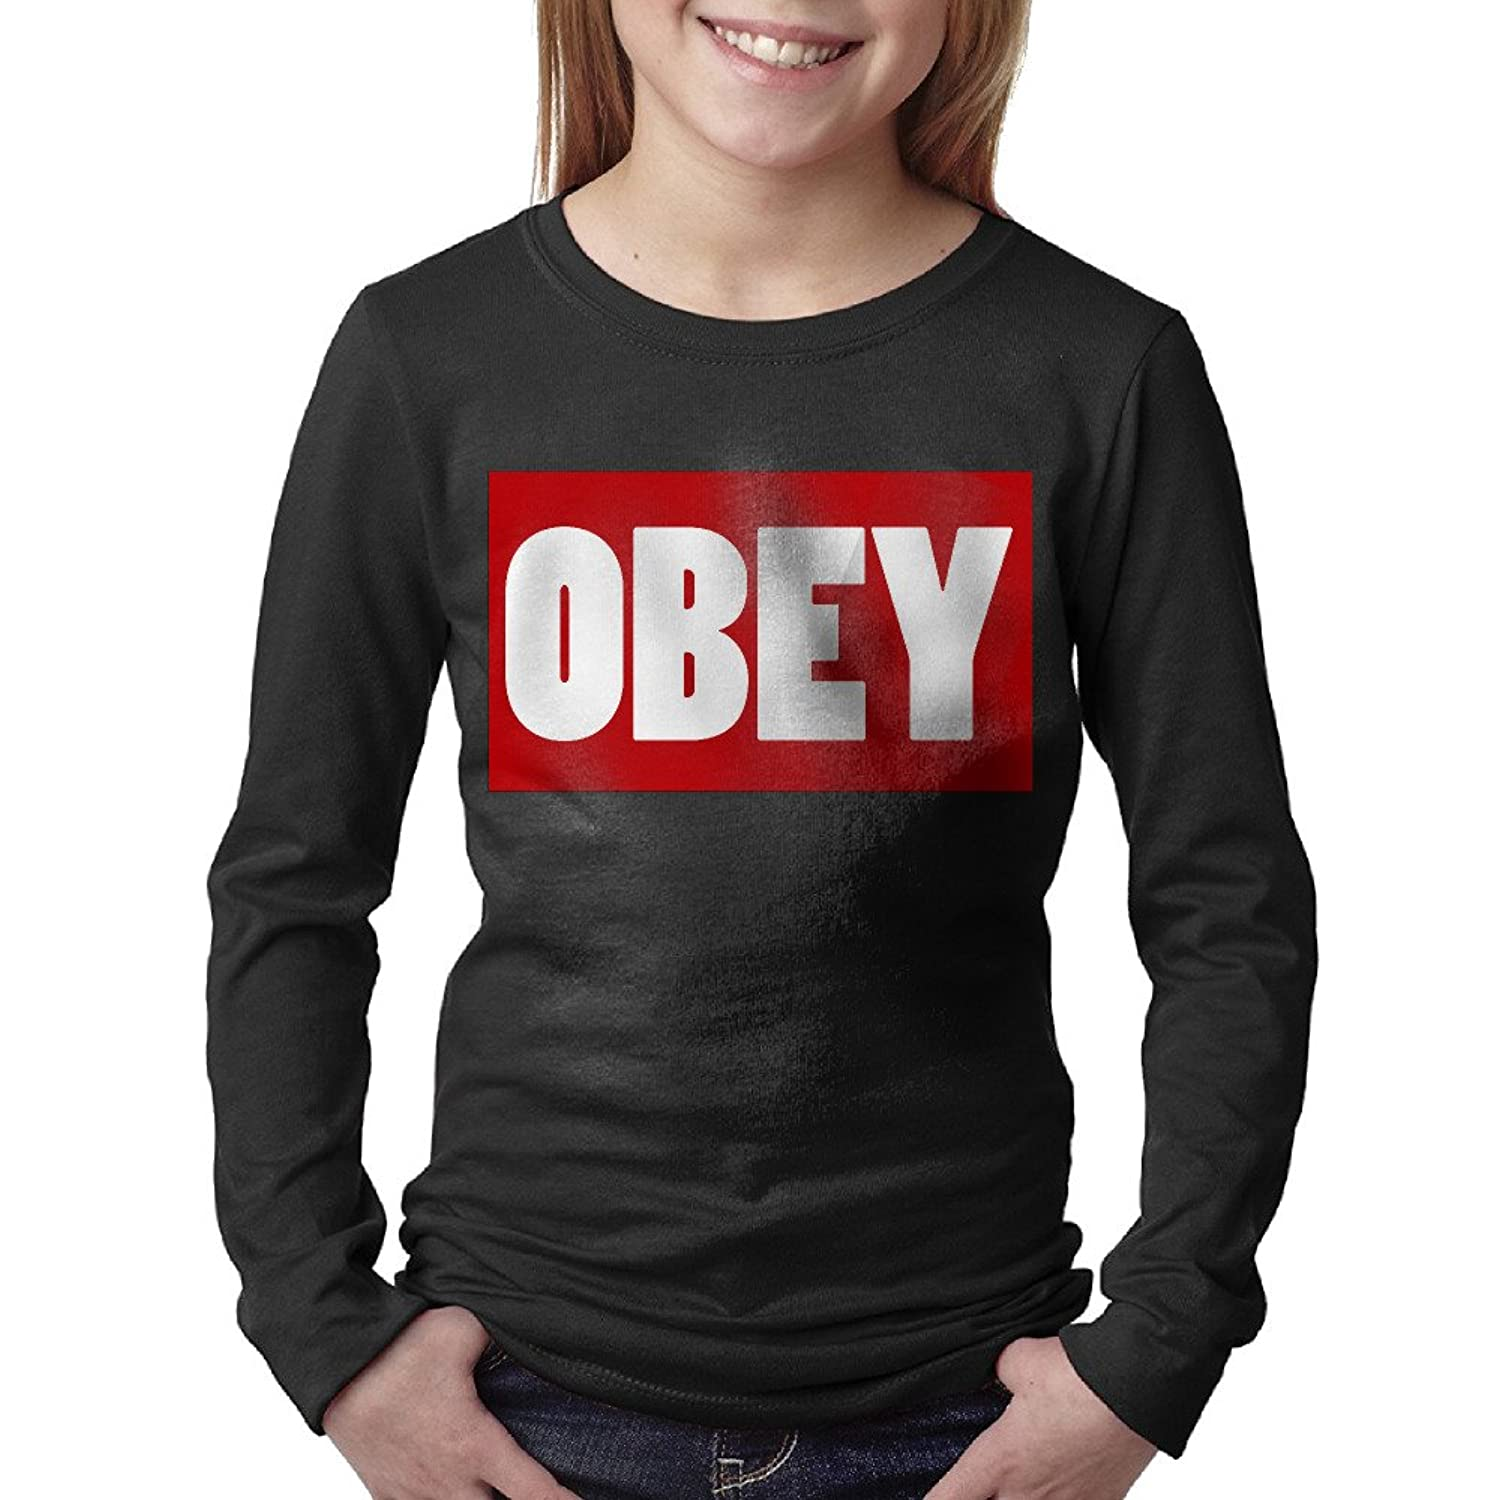 Teen Obey Classic Design Long Sleeve O-neck Tee Shirts Winter Autumn